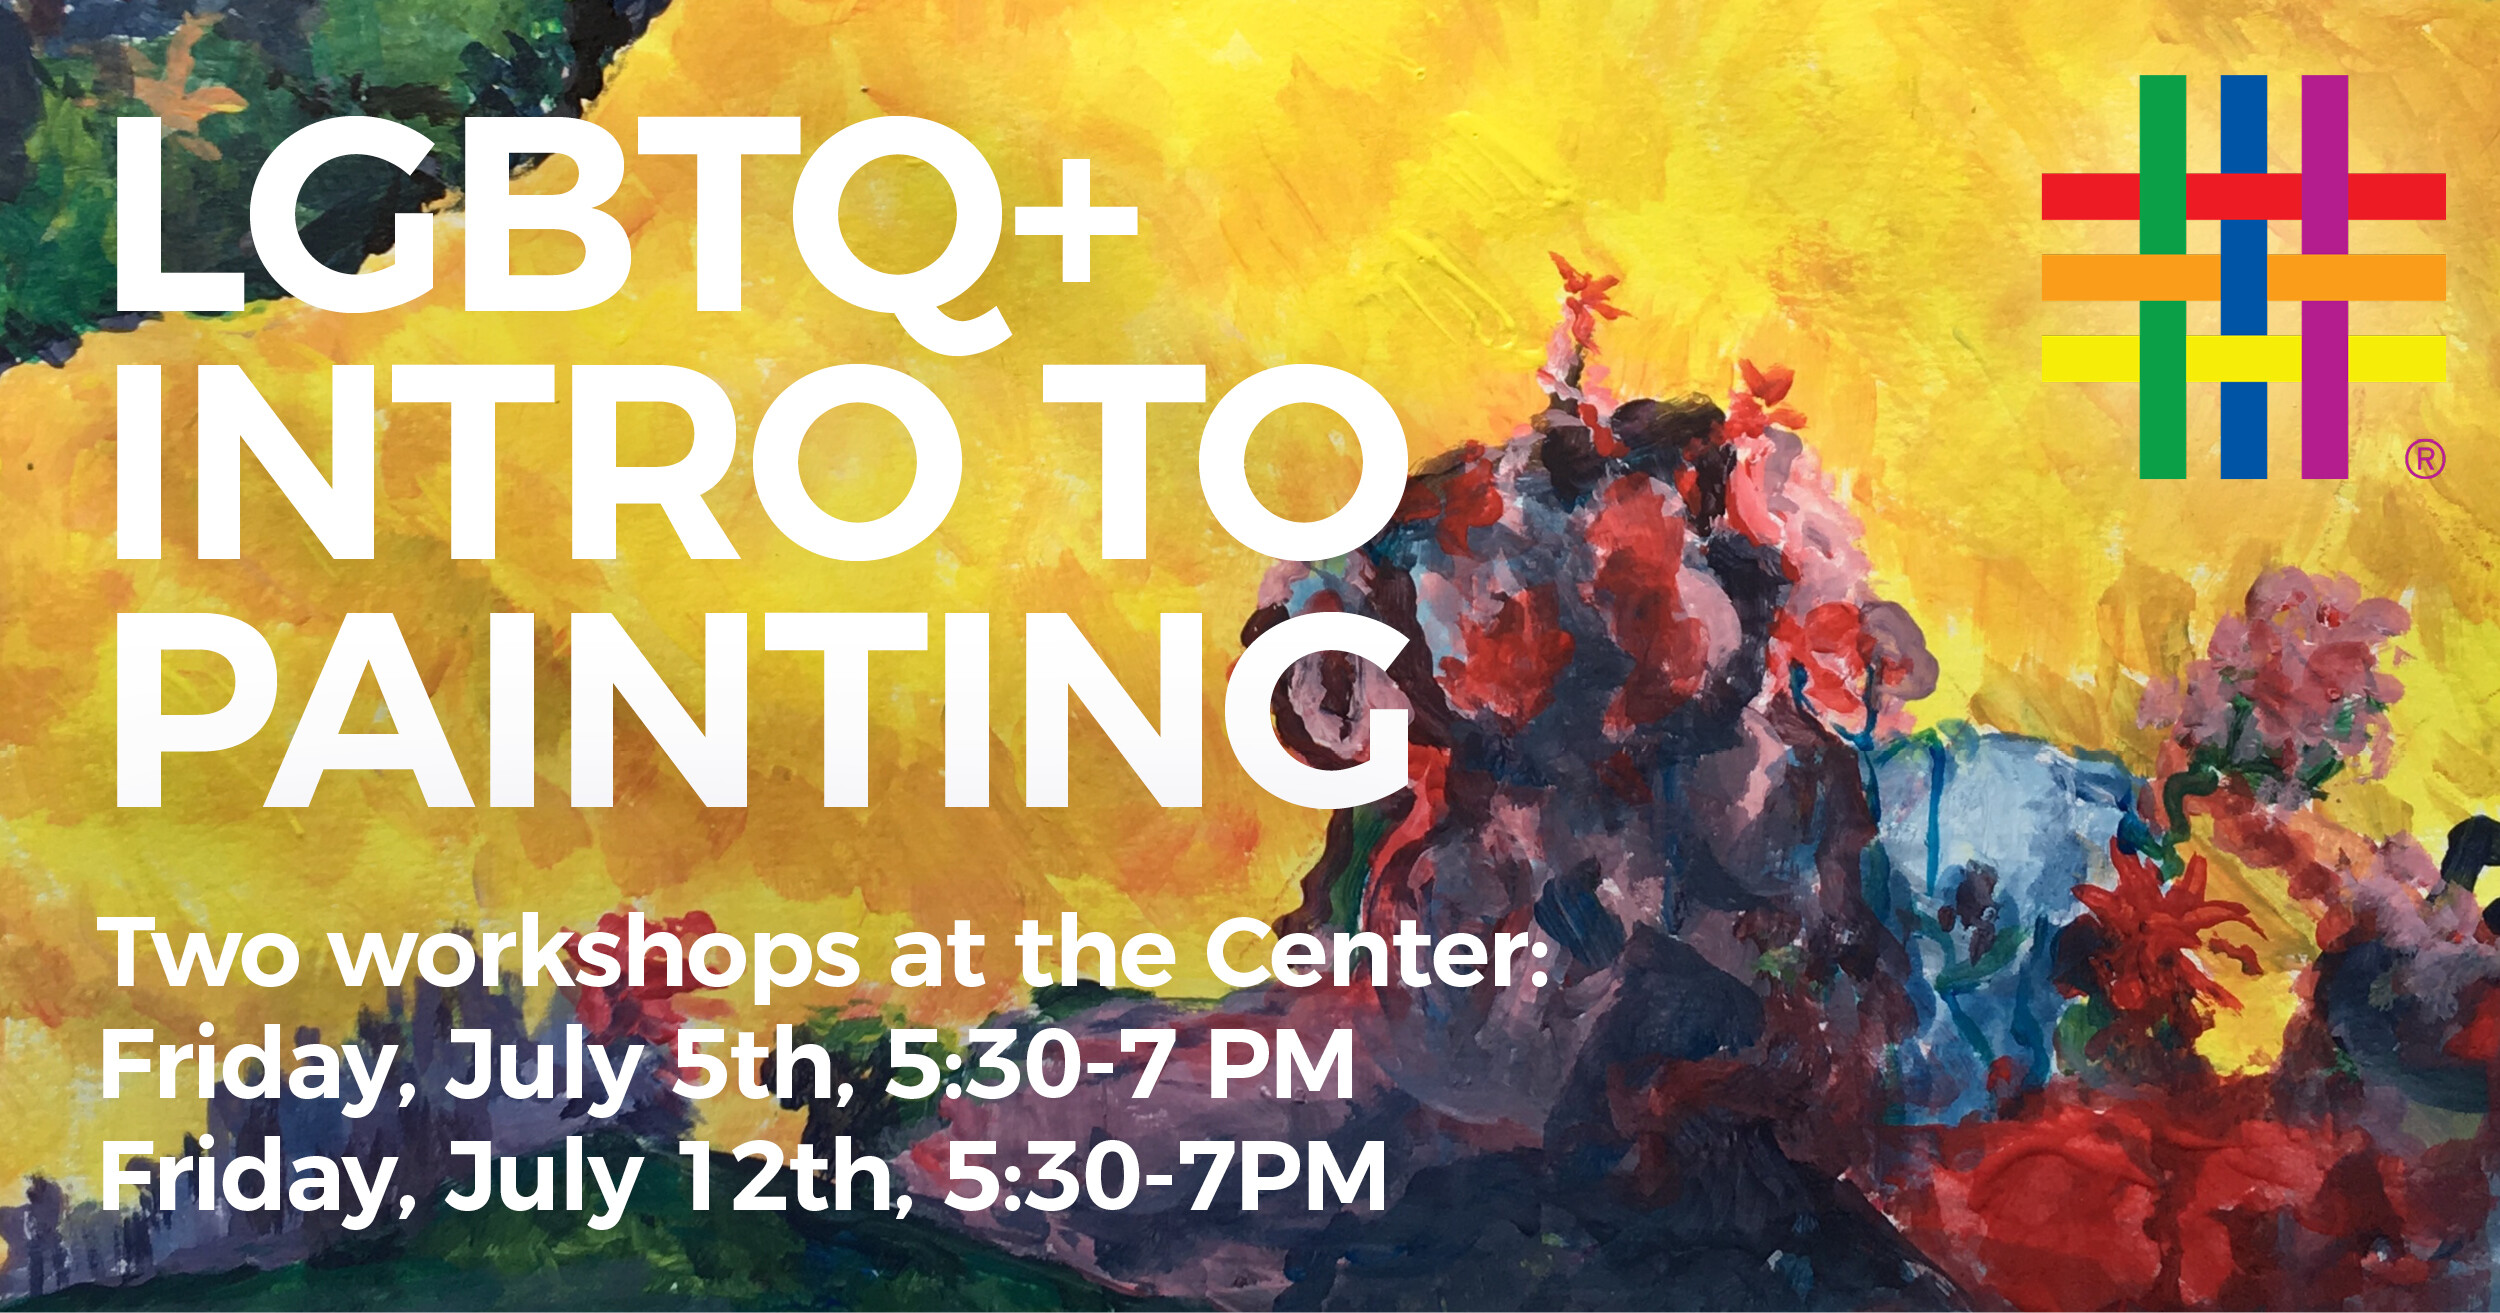 LGBTQ+ Intro to Painting at Brooklyn Community Pride Center